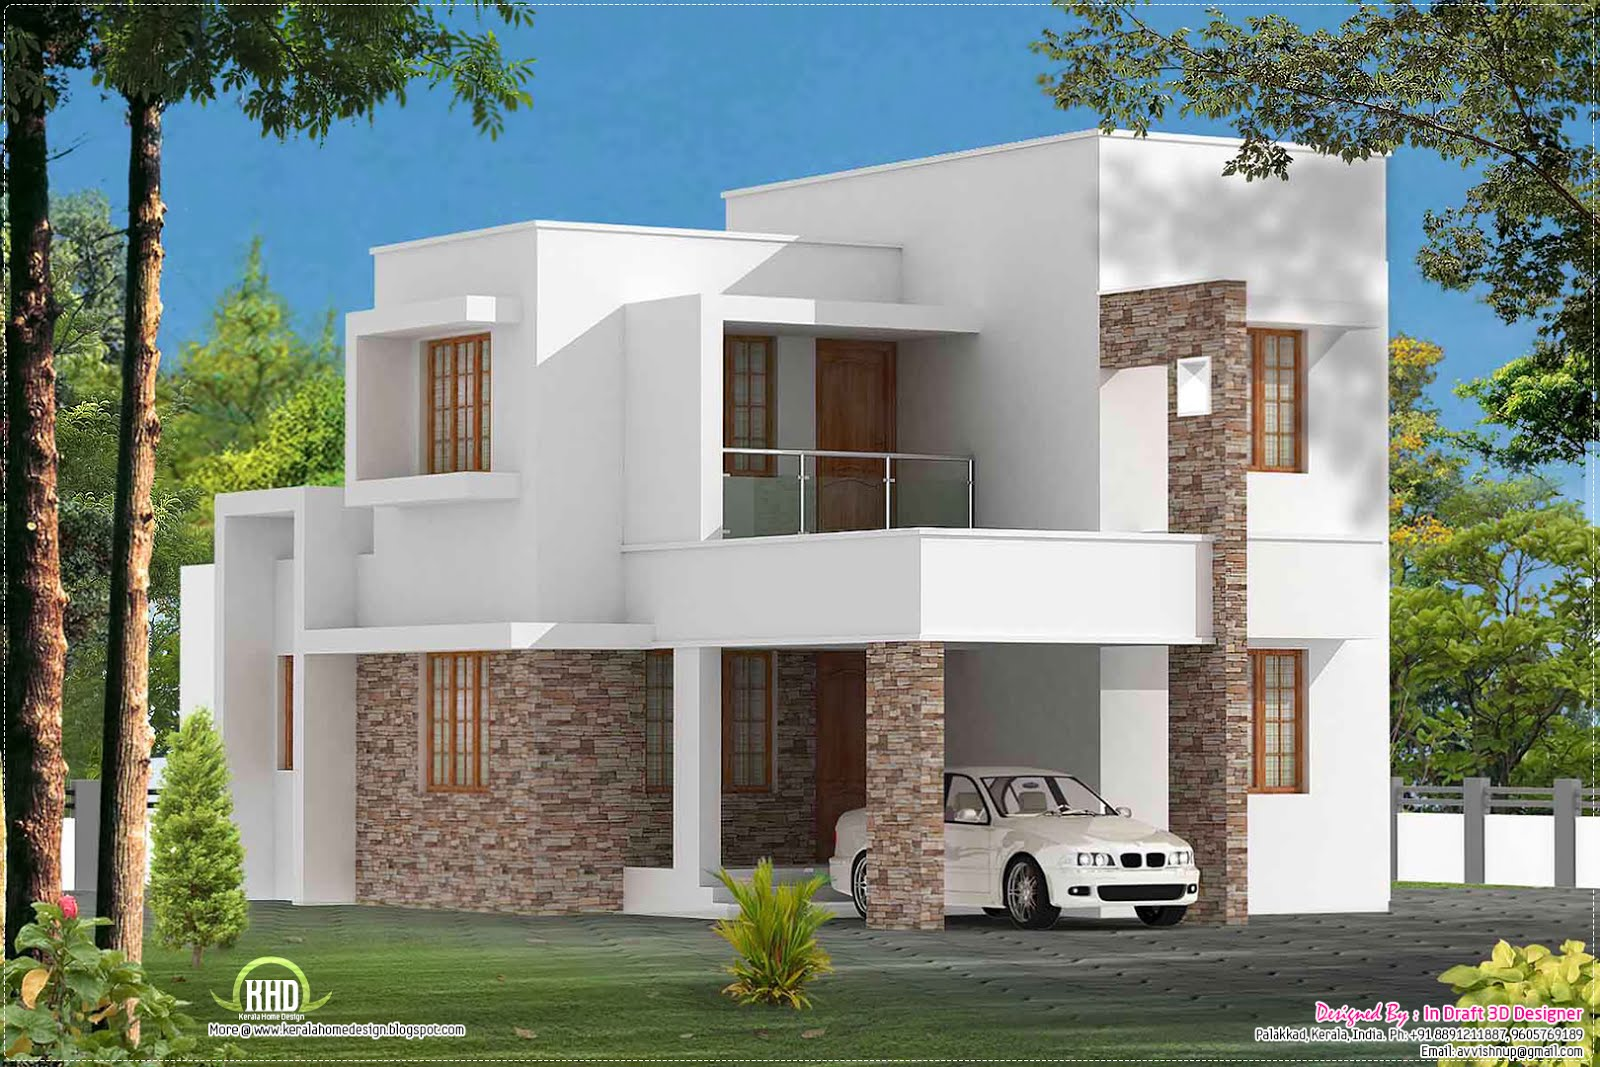 Simple 3 bed room contemporary villa kerala home design for Minimalist house design kerala